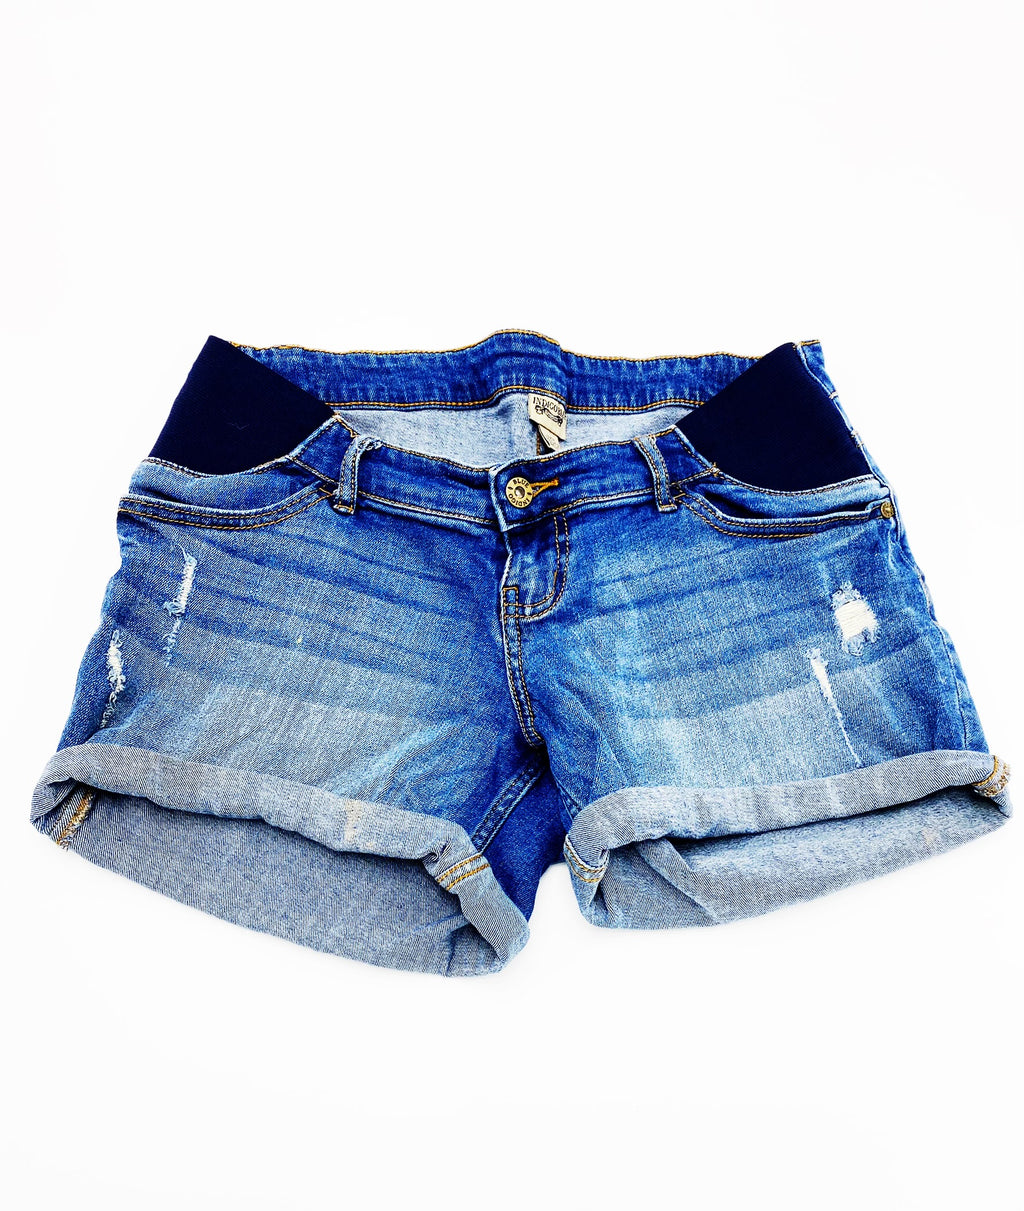 Indigo Blue jean shorts - medium